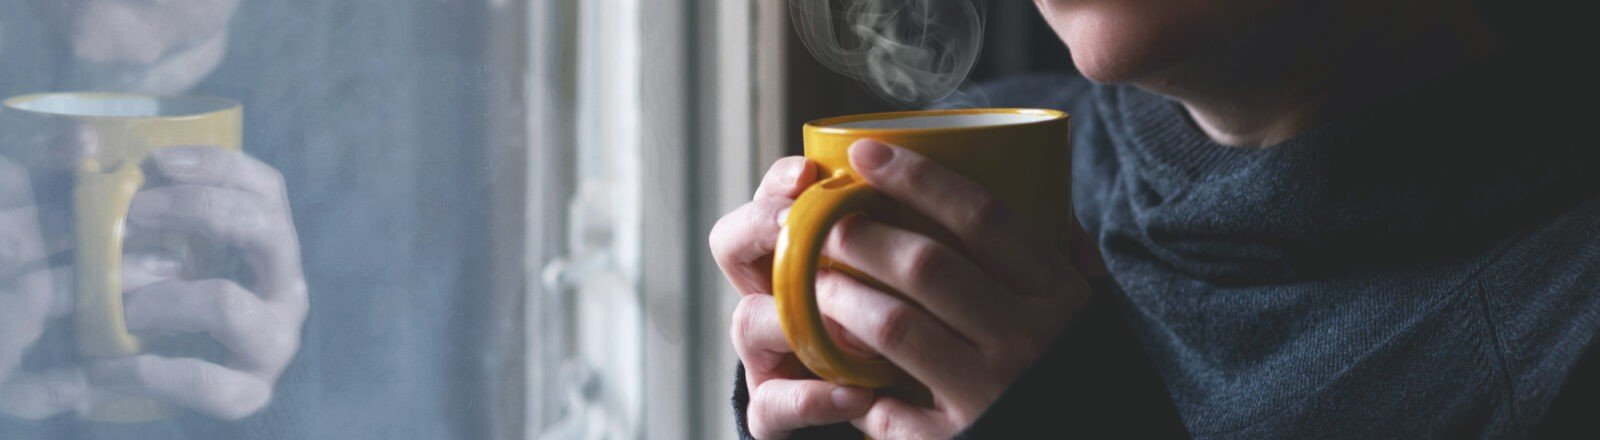 Young hands holding a steaming yellow cup while in a blue sweater